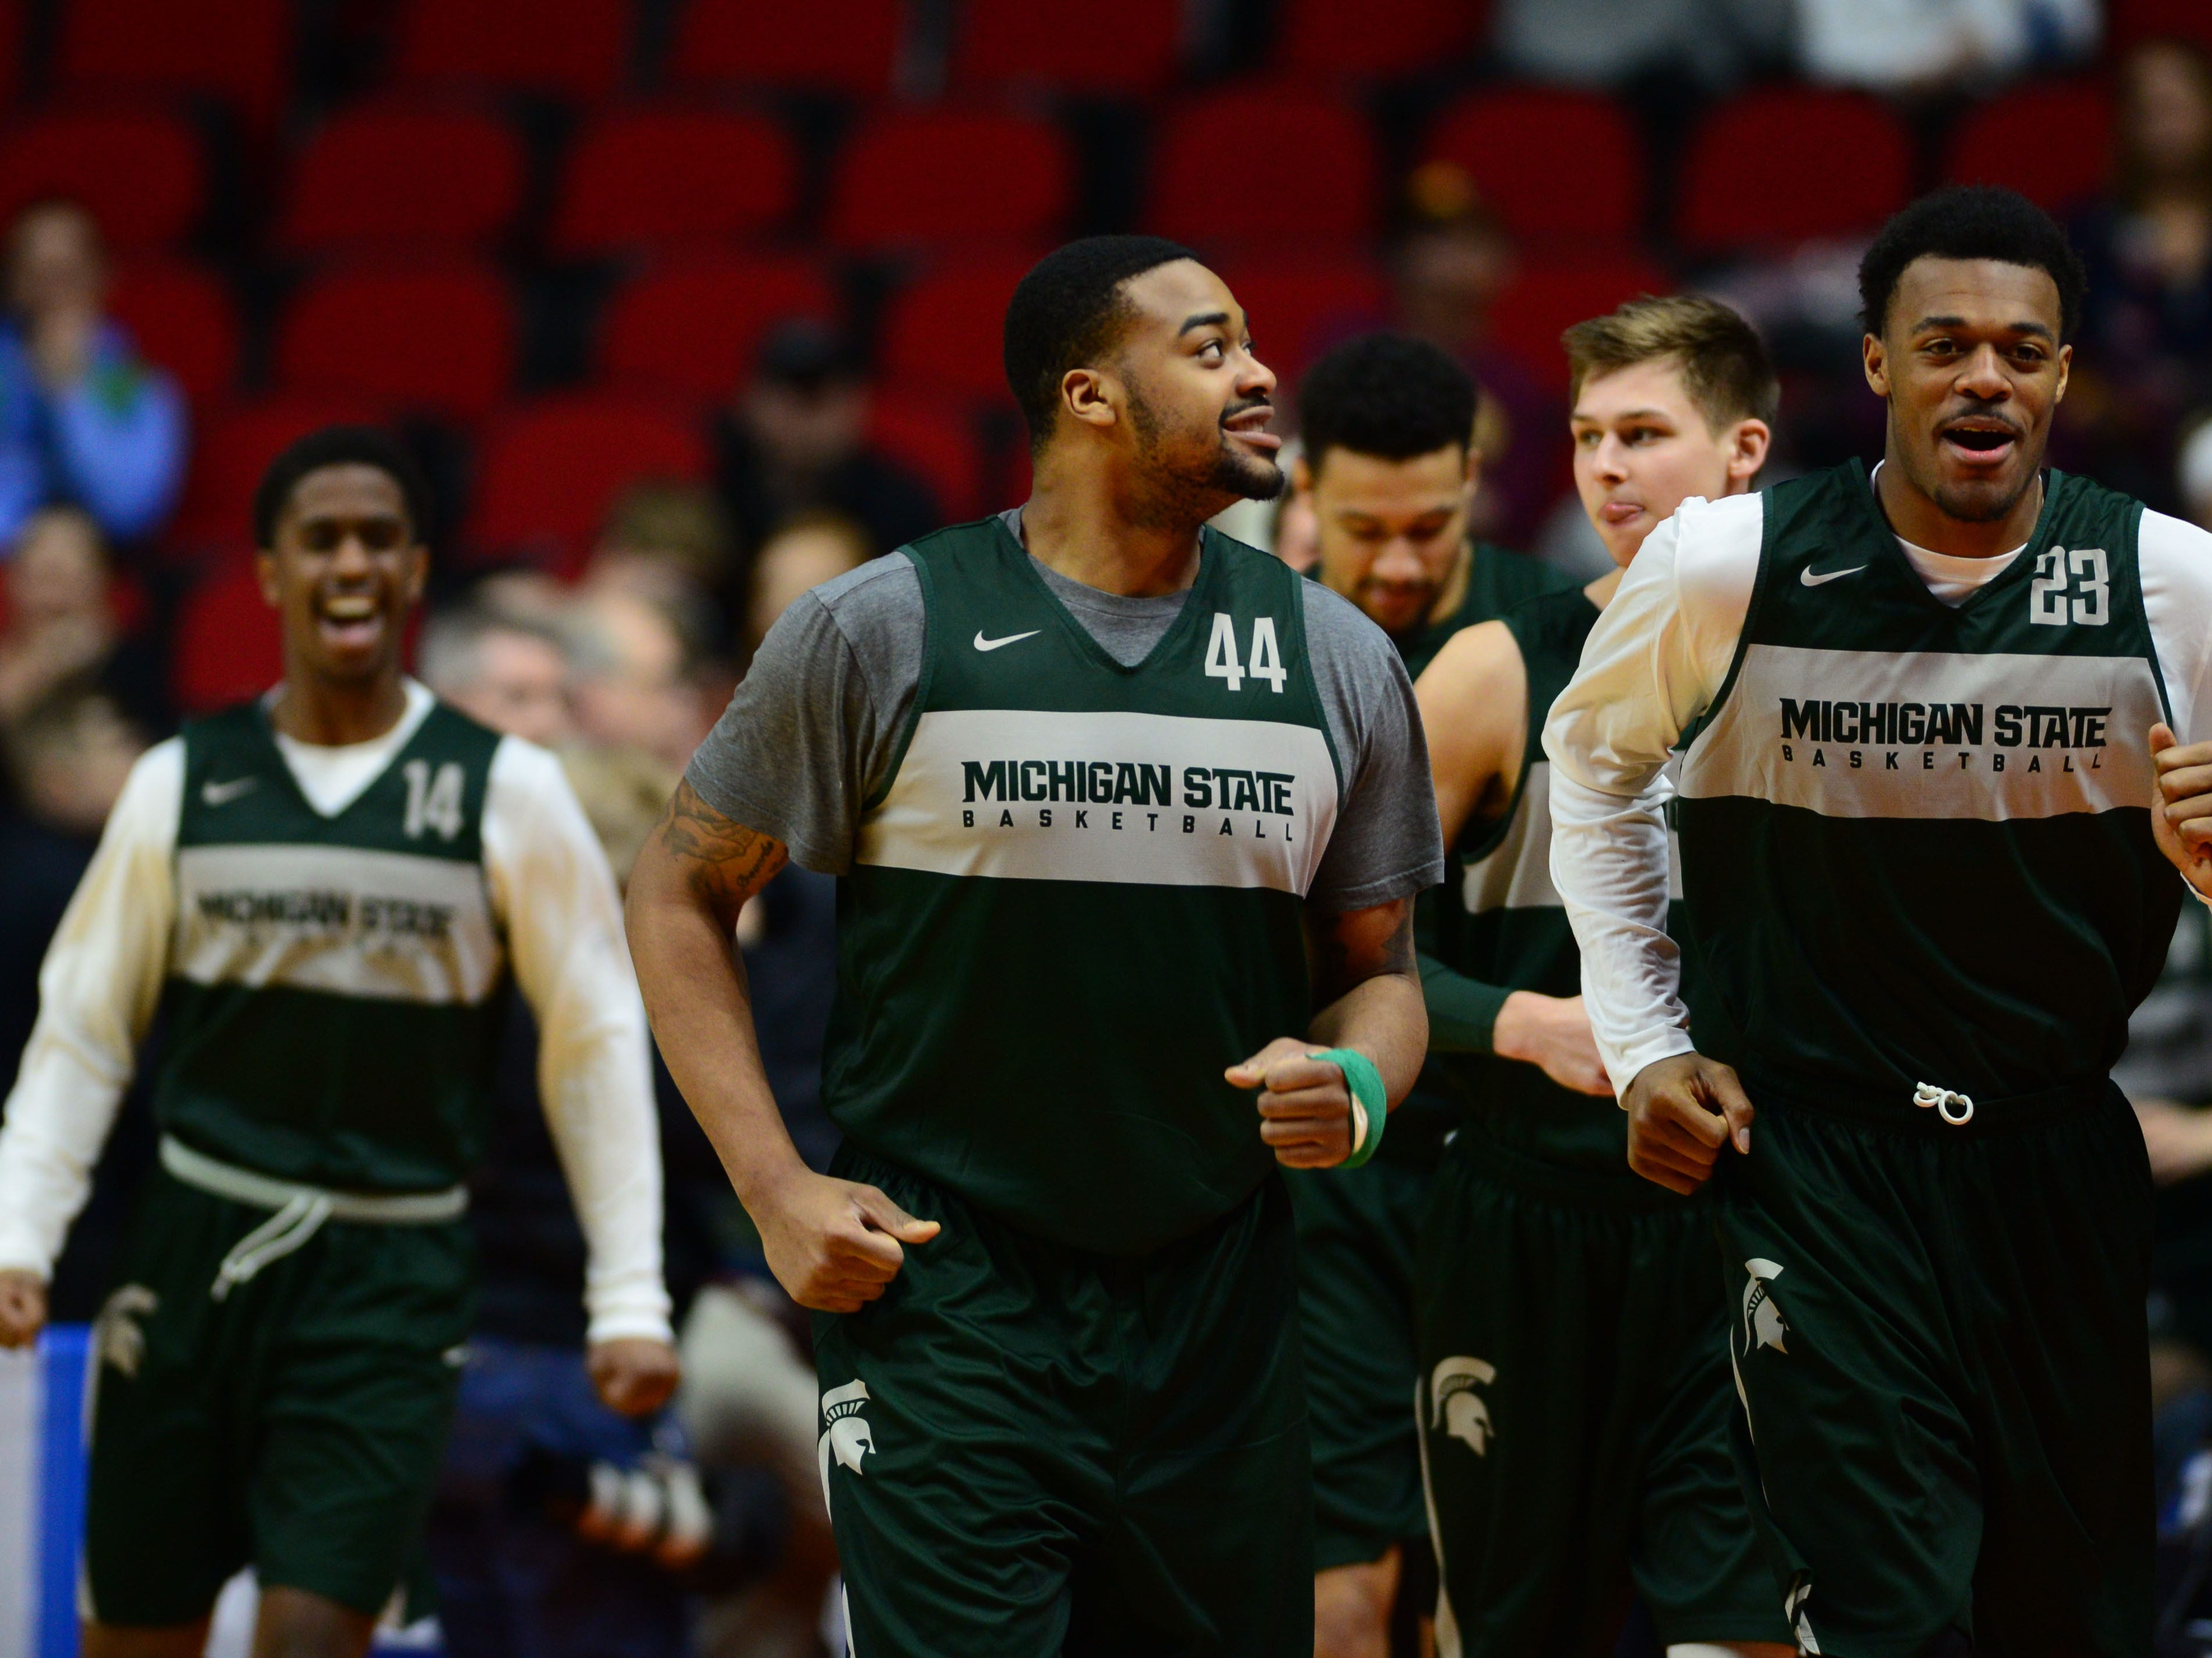 Mar 20, 2019; Des Moines, IA, USA; Michigan State Spartans forward Nick Ward (44) and Michigan State Spartans forward Xavier Tillman (23) during practice before the first round of the 2019 NCAA Tournament at Wells Fargo Arena. Mandatory Credit: Jeffery Becker-USA TODAY Sports